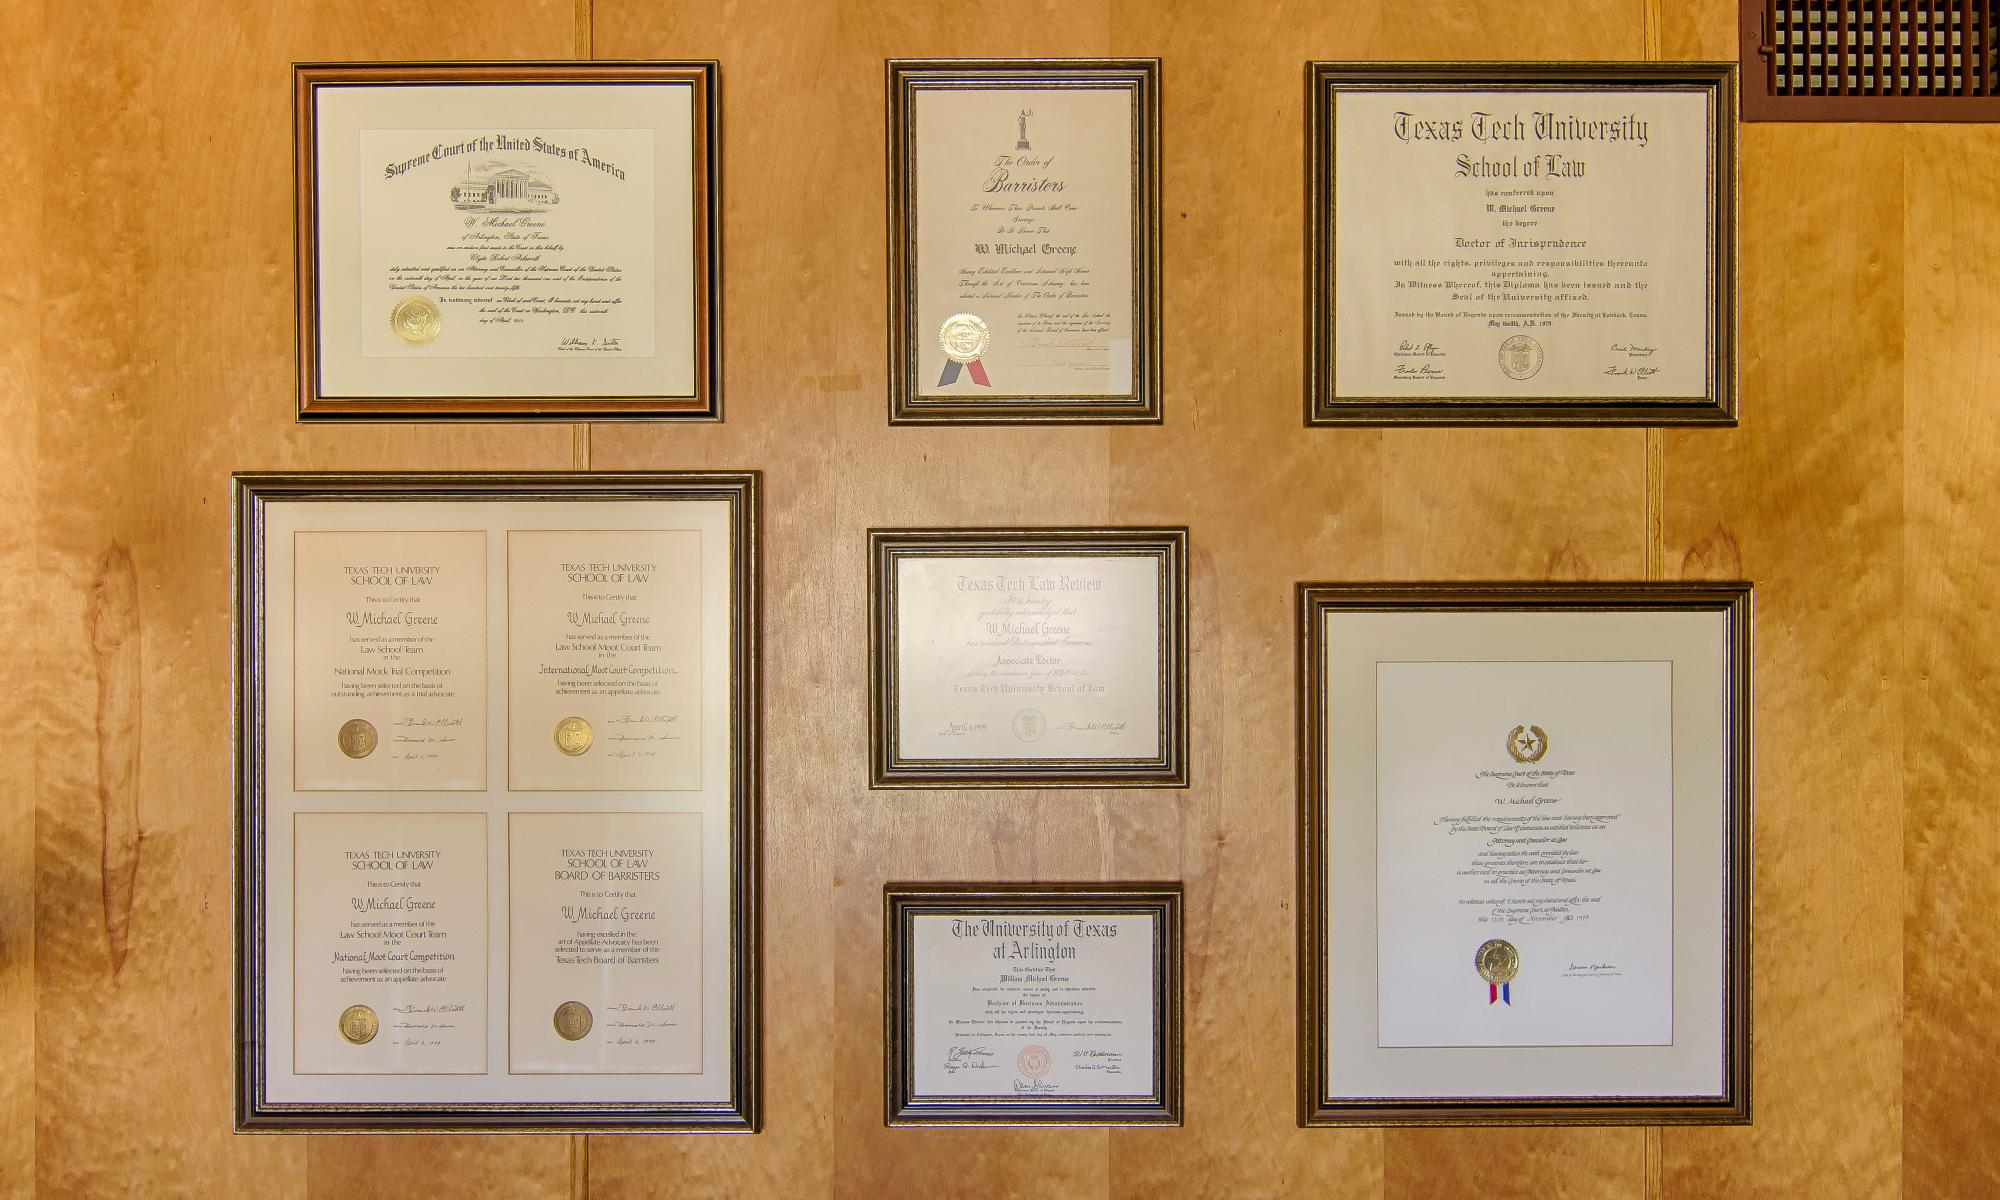 W Michael Greene's plaques and certificates and awards